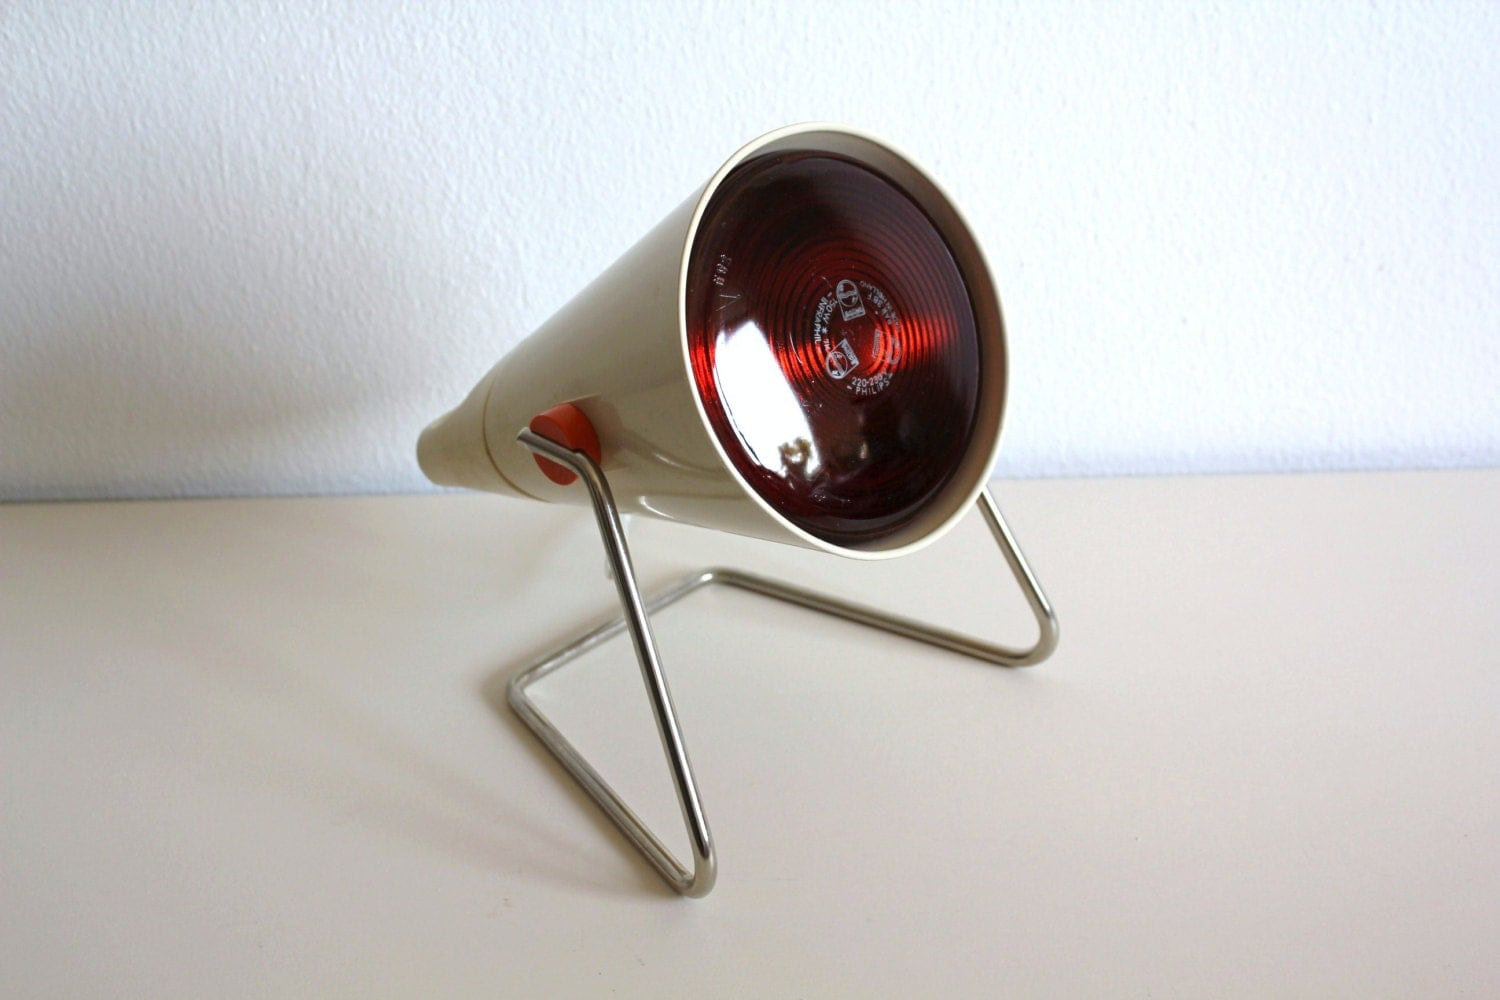 vintage philips infrared lamp 1970s medical by cakenumber9 on etsy. Black Bedroom Furniture Sets. Home Design Ideas